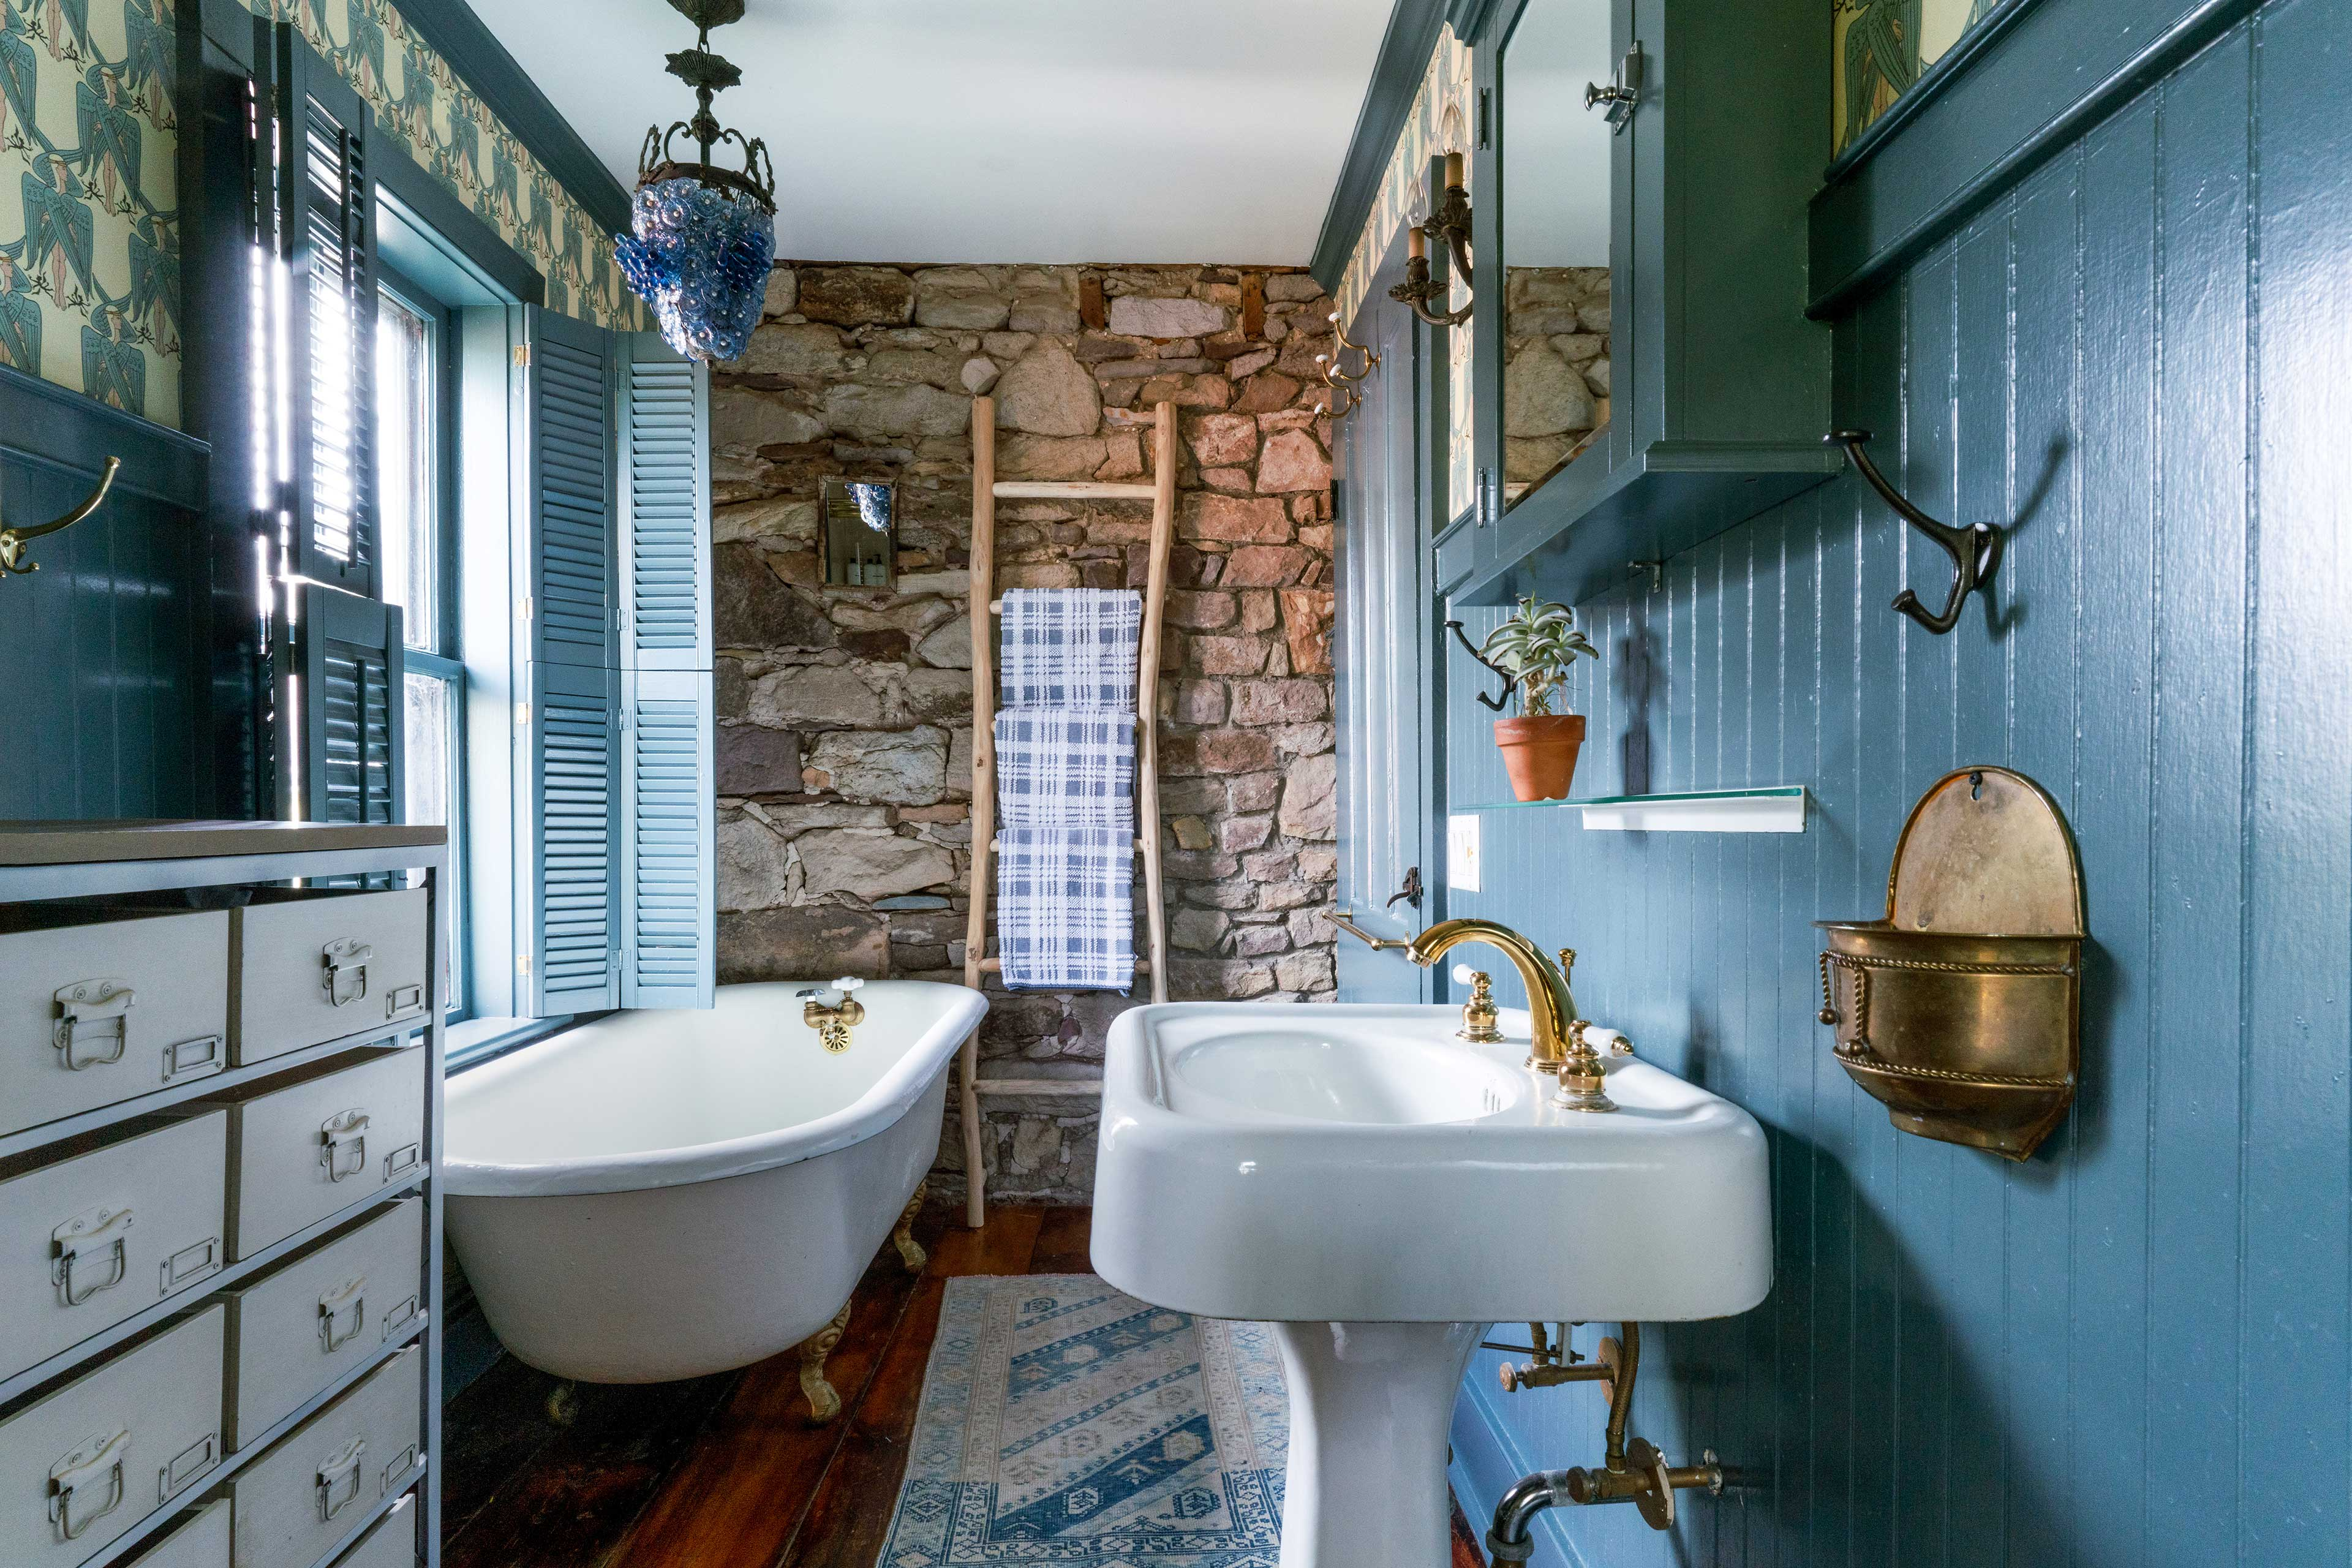 Sink into the clawfoot tub and relax.